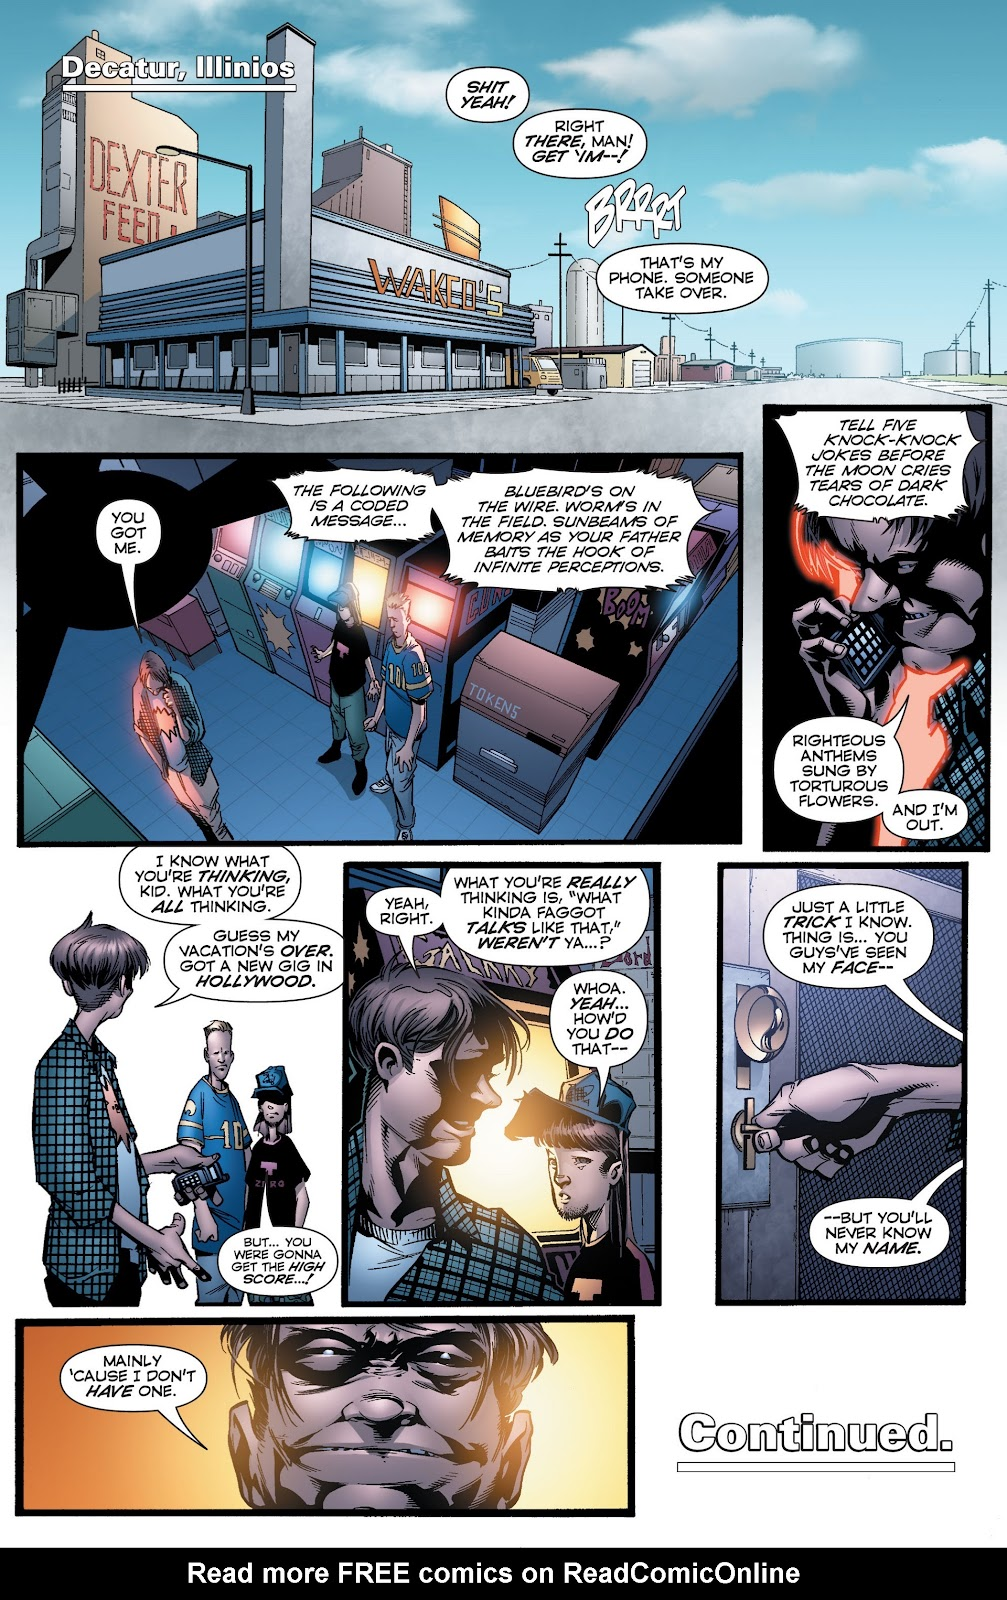 Wildcats Version 3.0 Issue #21 #21 - English 23